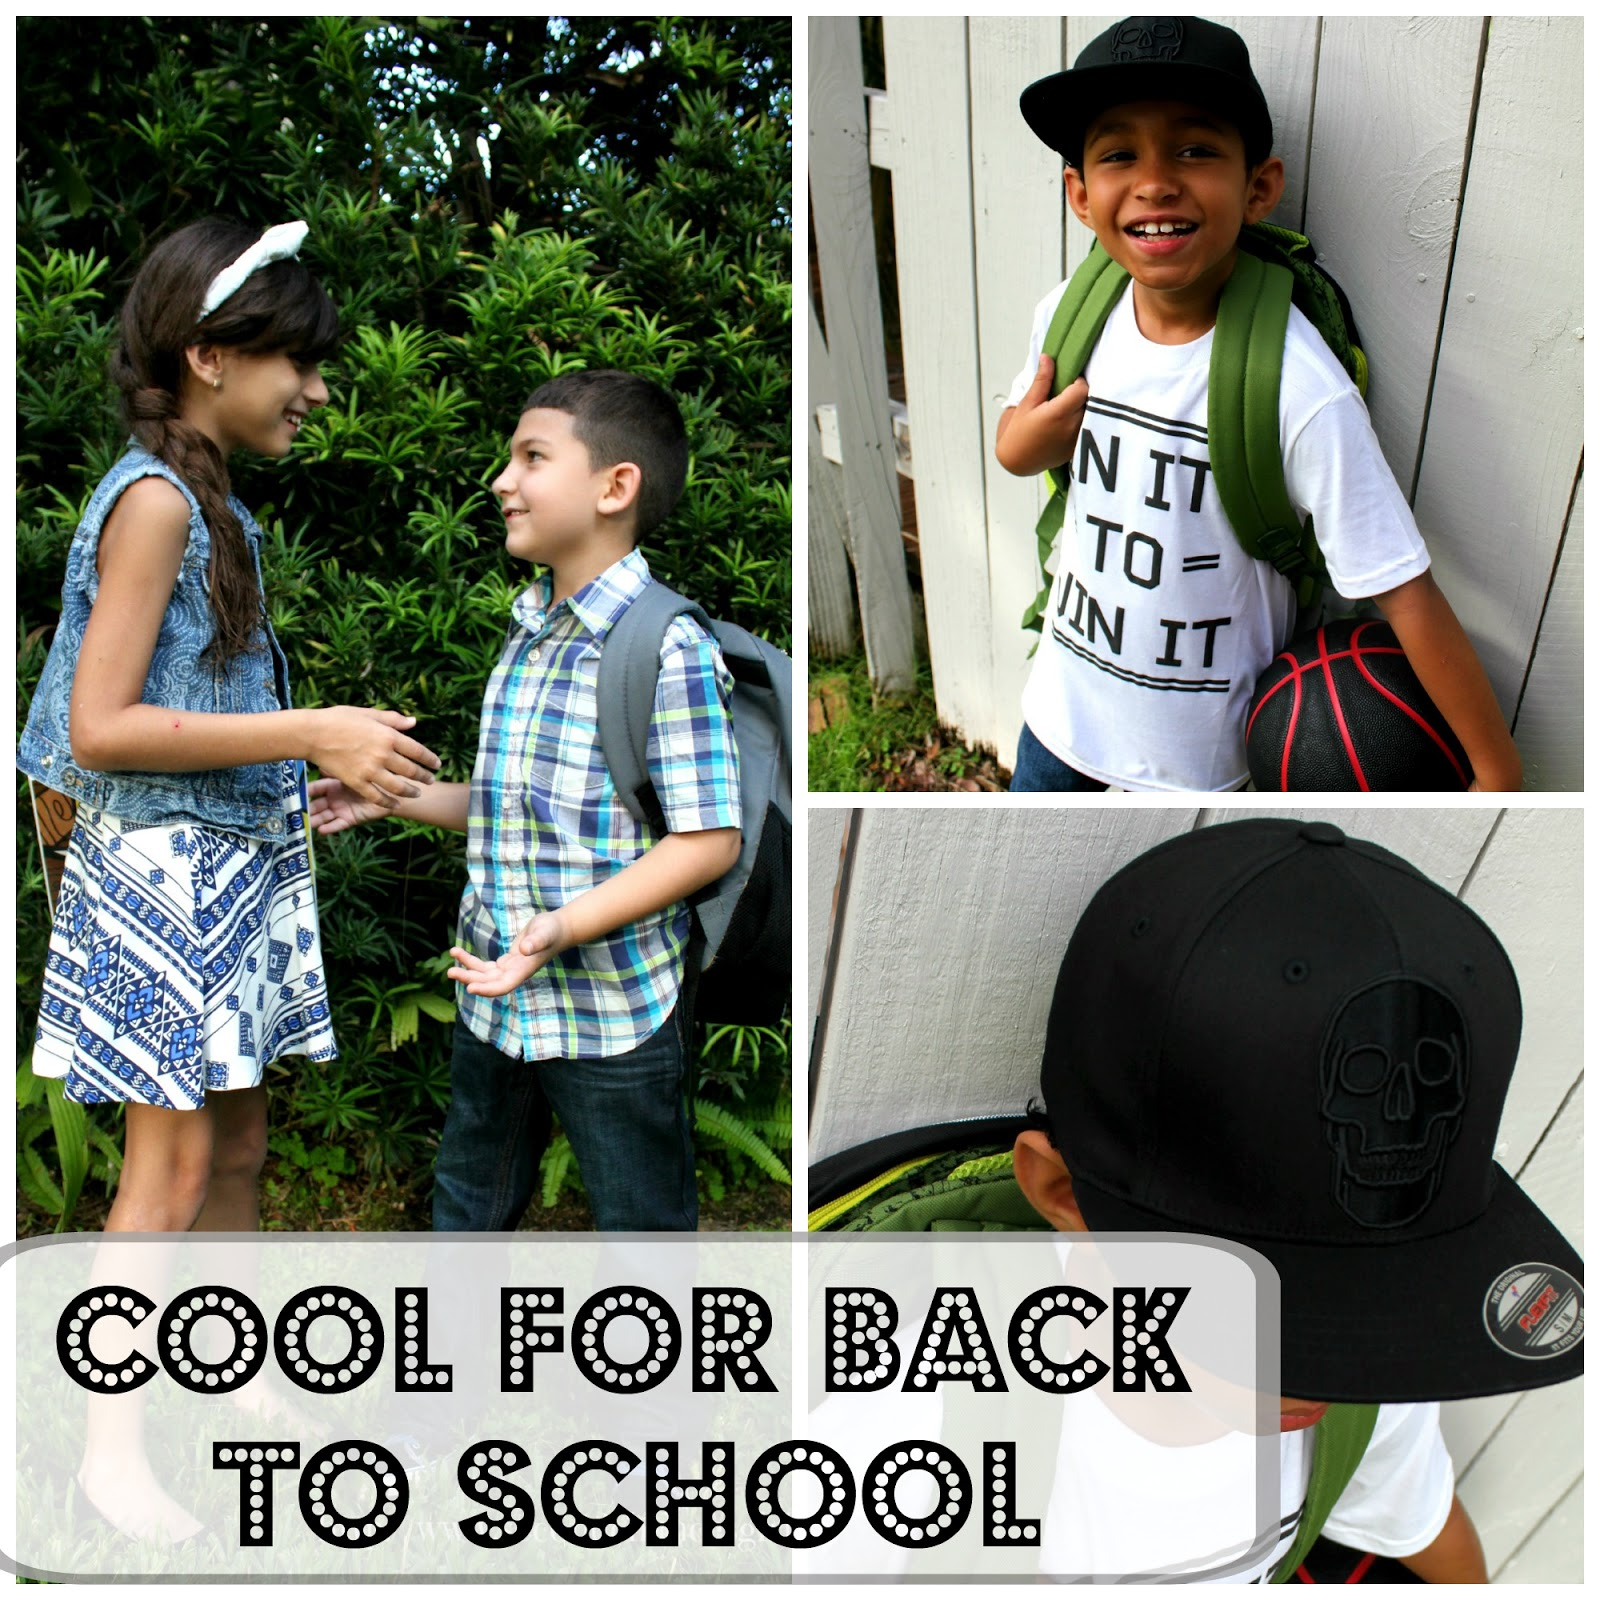 Cool looks for back to school by P.S. from Aeropostale